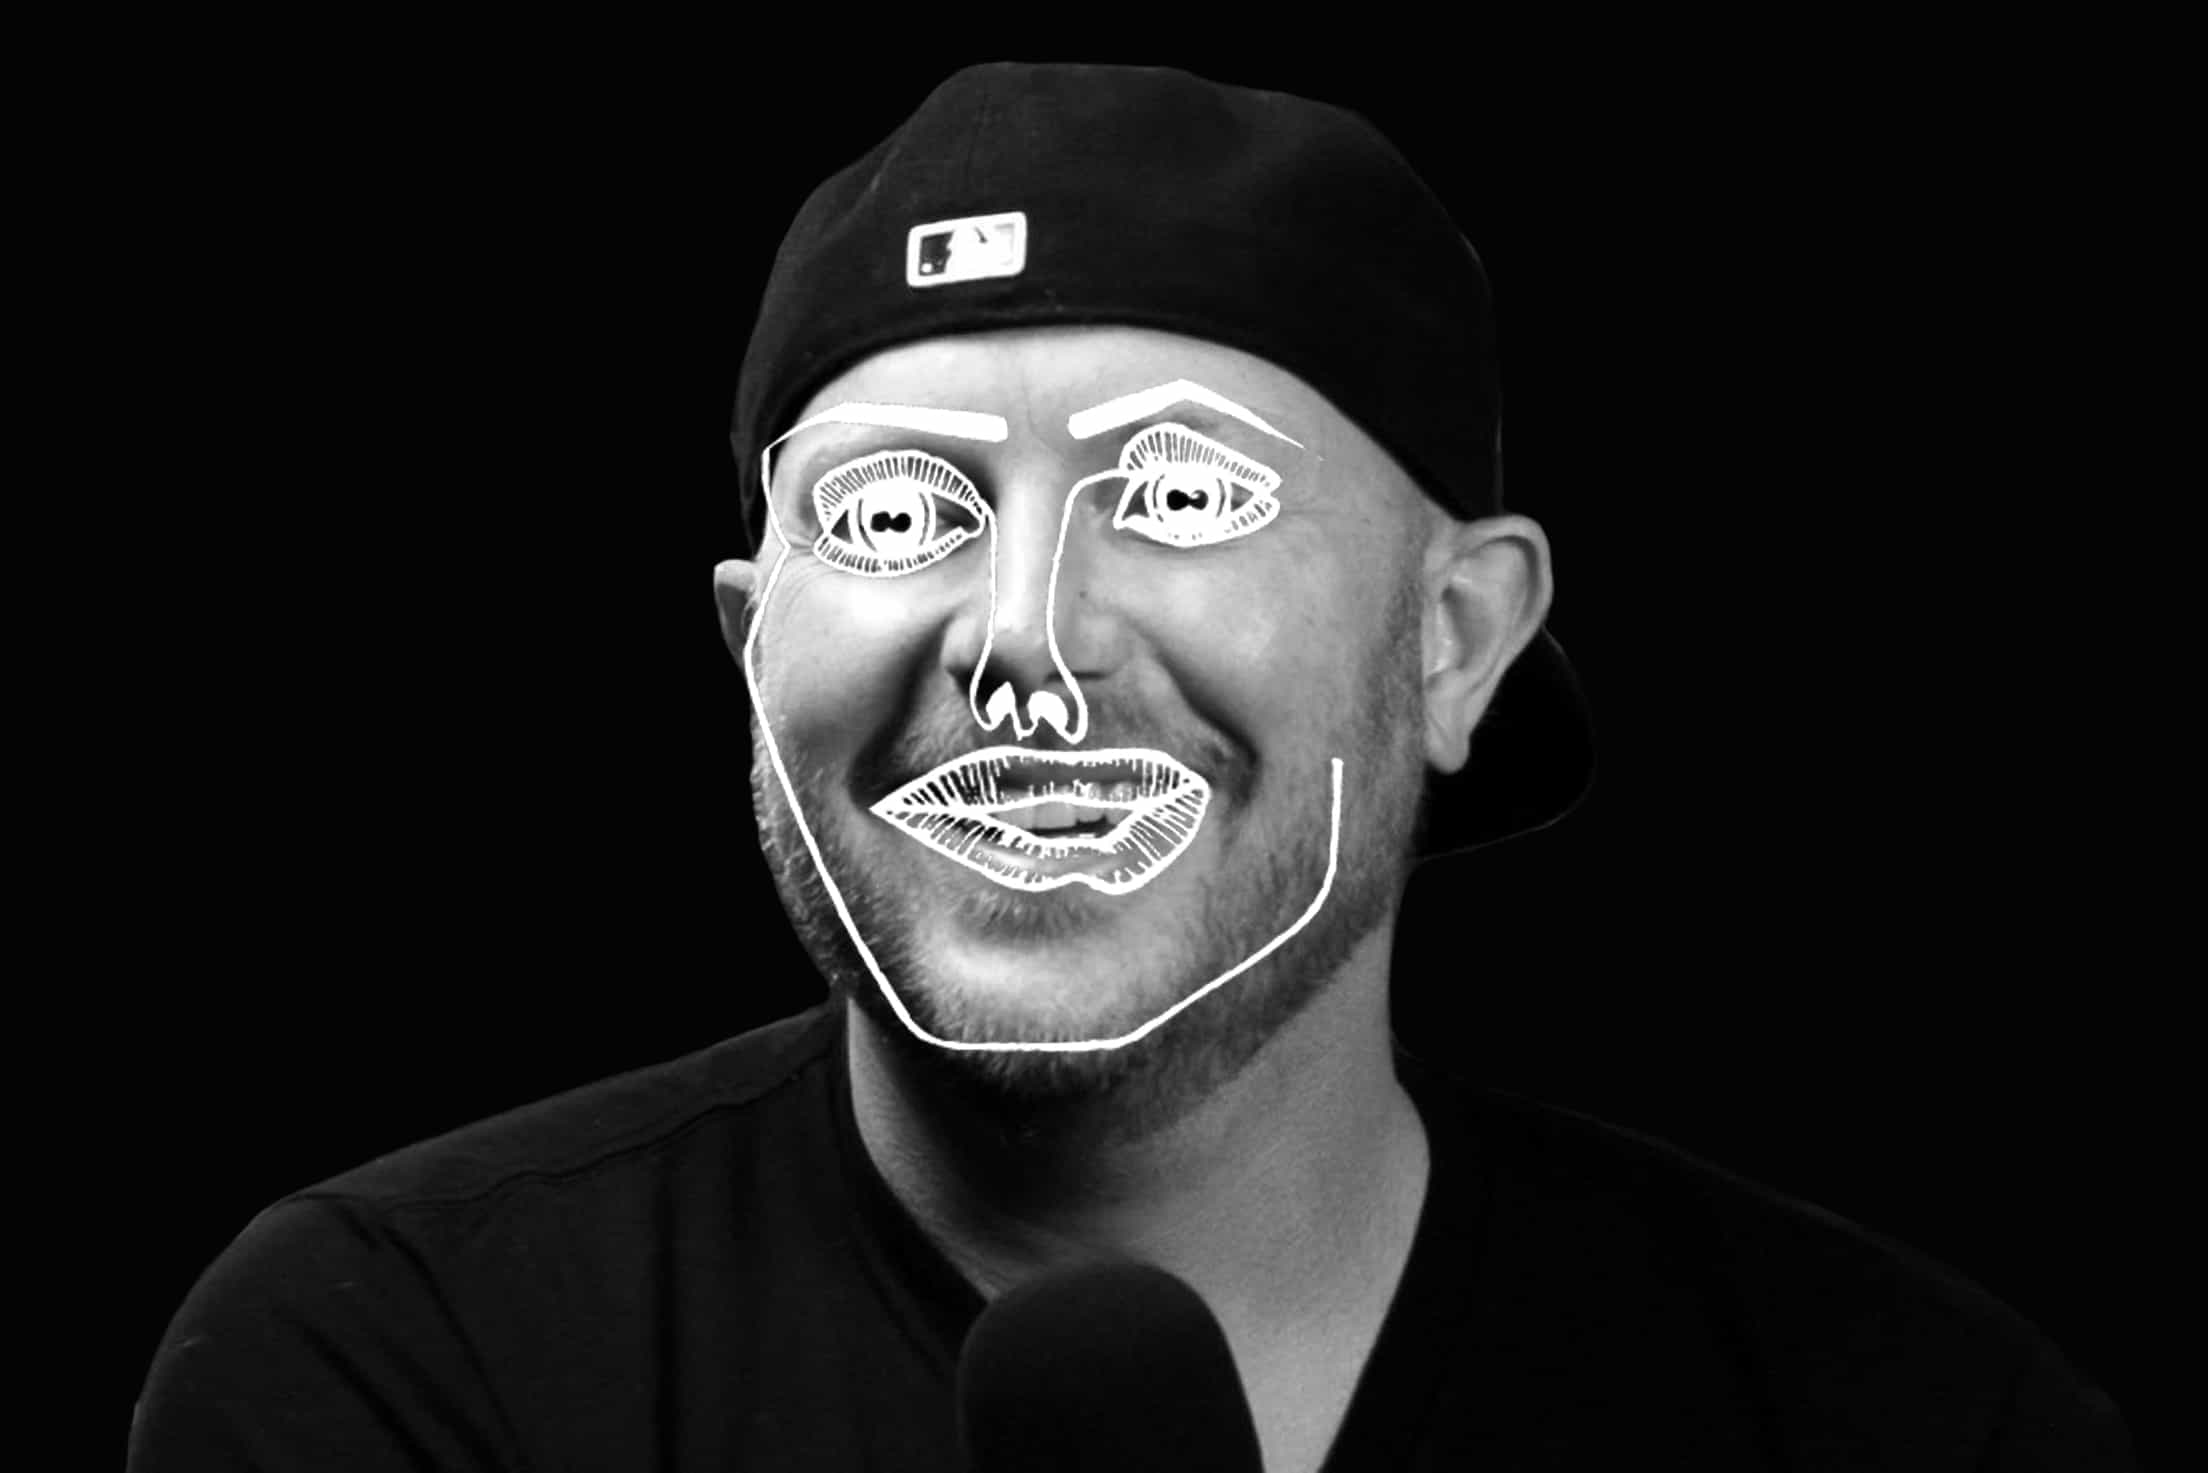 ERIC PRYDZ DROPS TWO NEW TRACKS AS CIREZ D: LISTEN